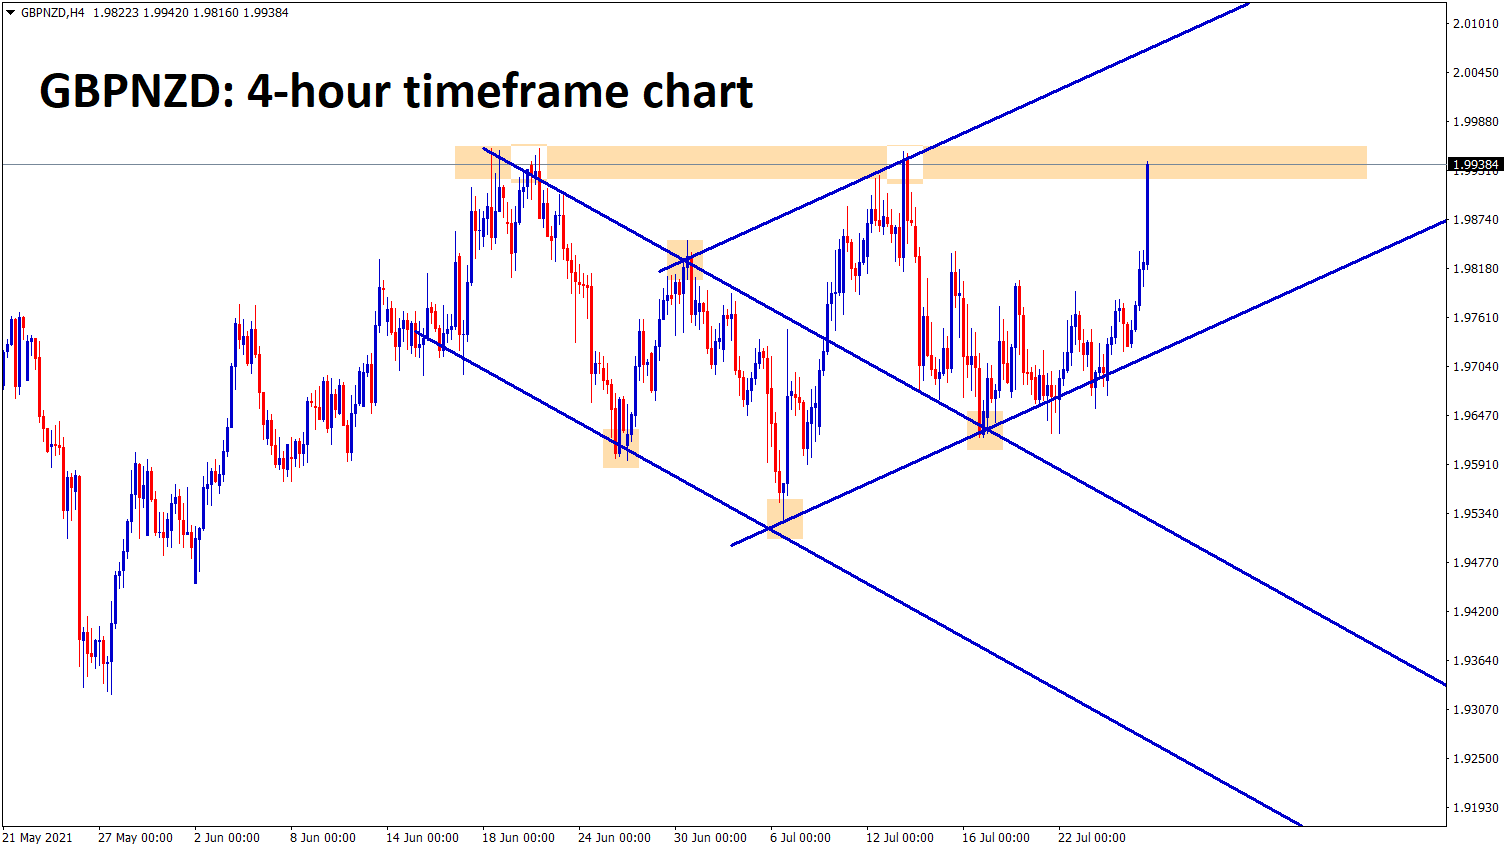 GBPNZD is moving in an uptrend channel range and it reached the resistance level now